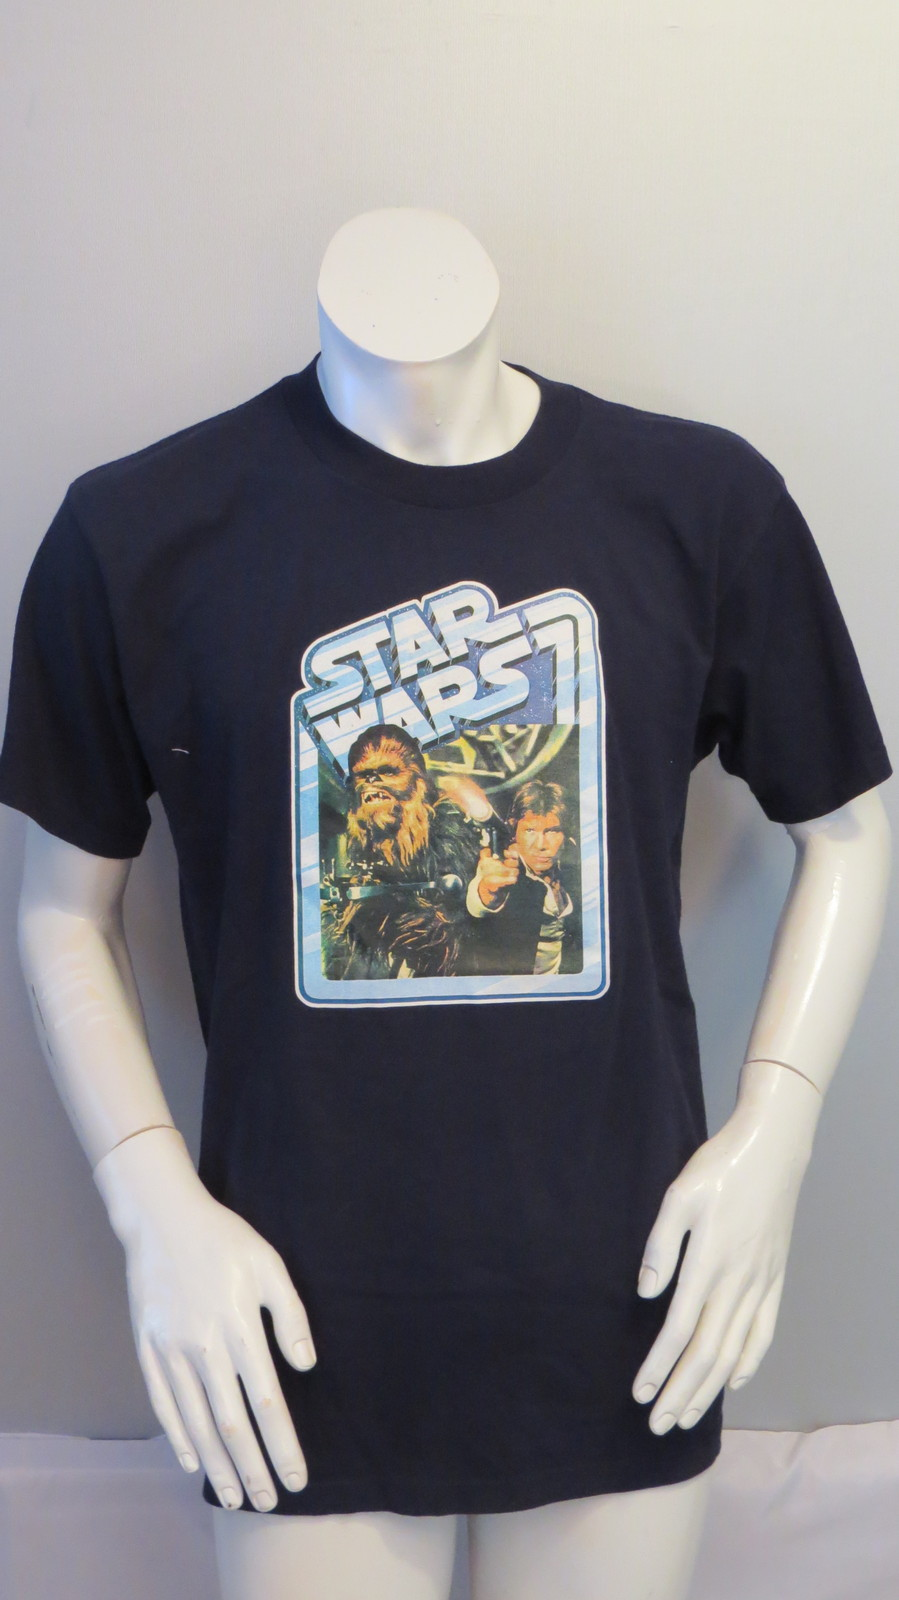 NWT Star Wars Gray Chewbacca Graphic T Shirt Top Sizes S-XL